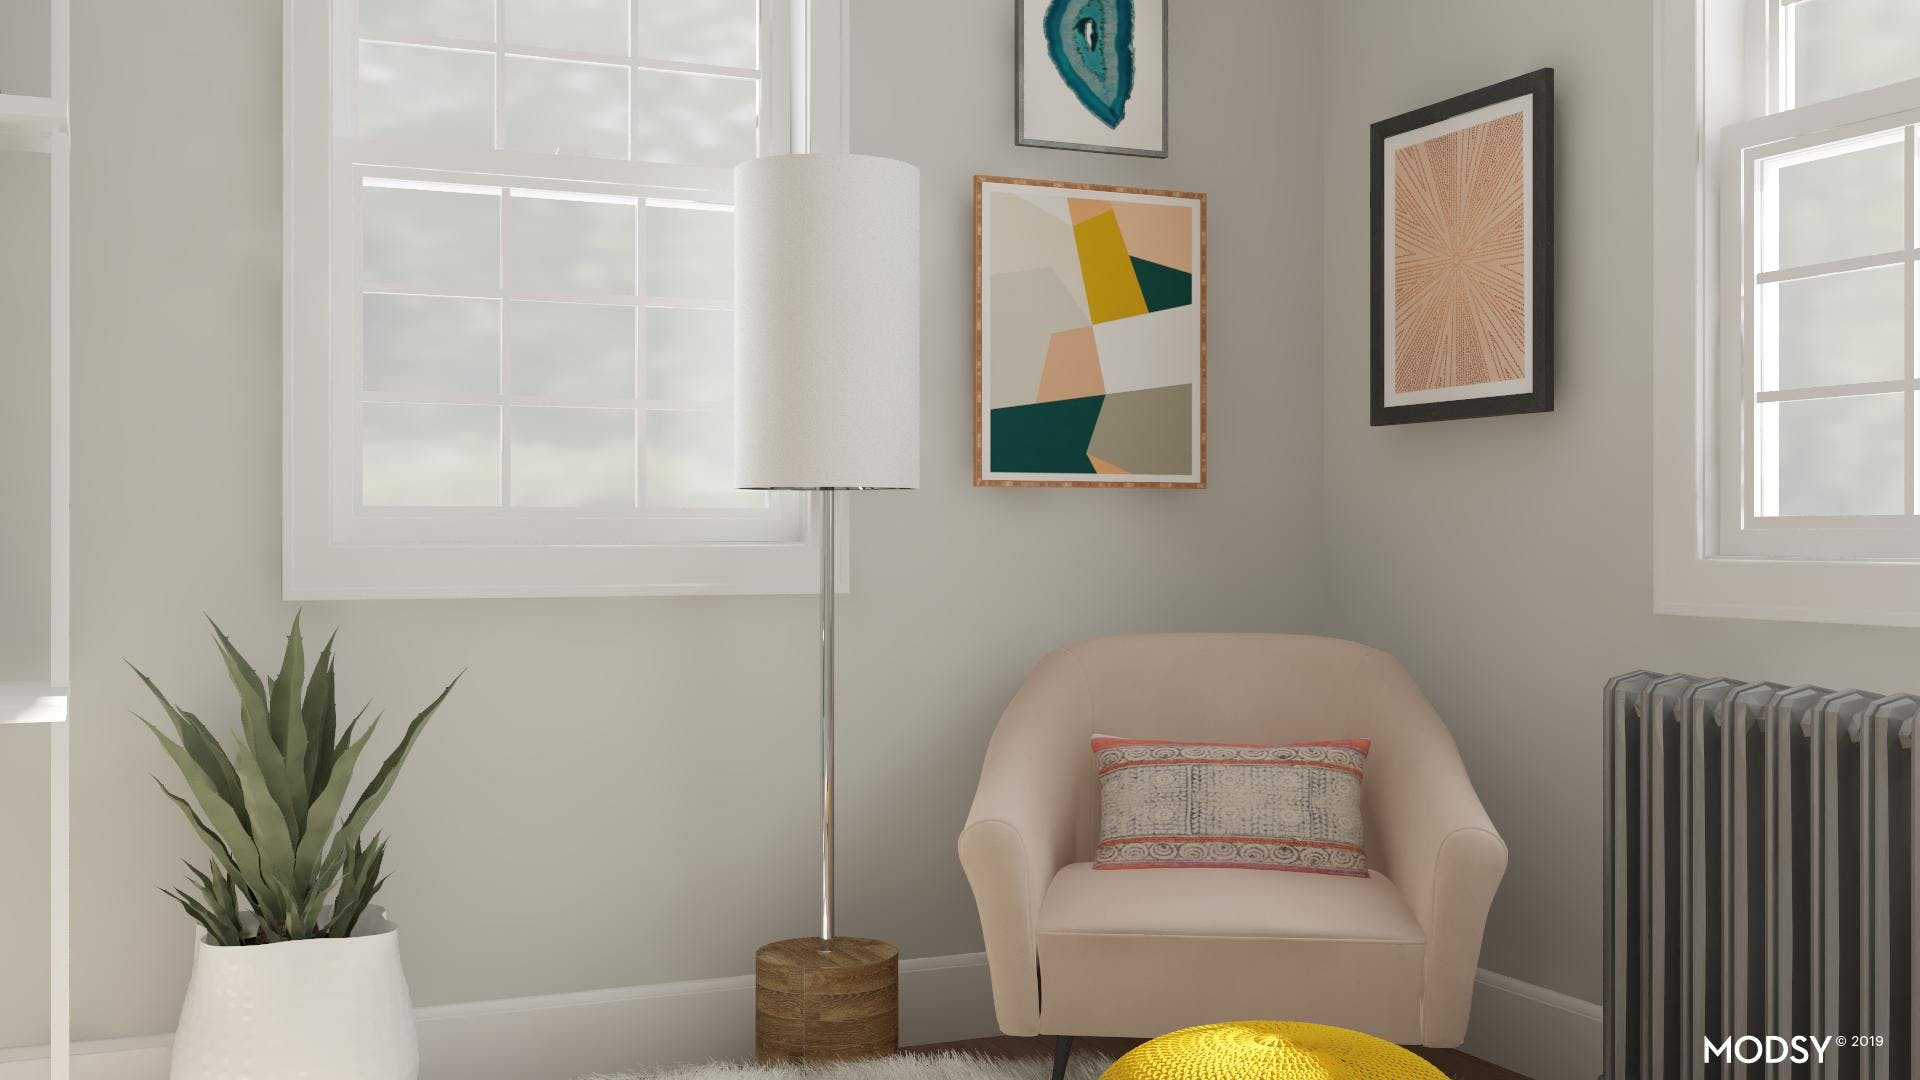 Balancing Jewel Tones In A Small Office Space